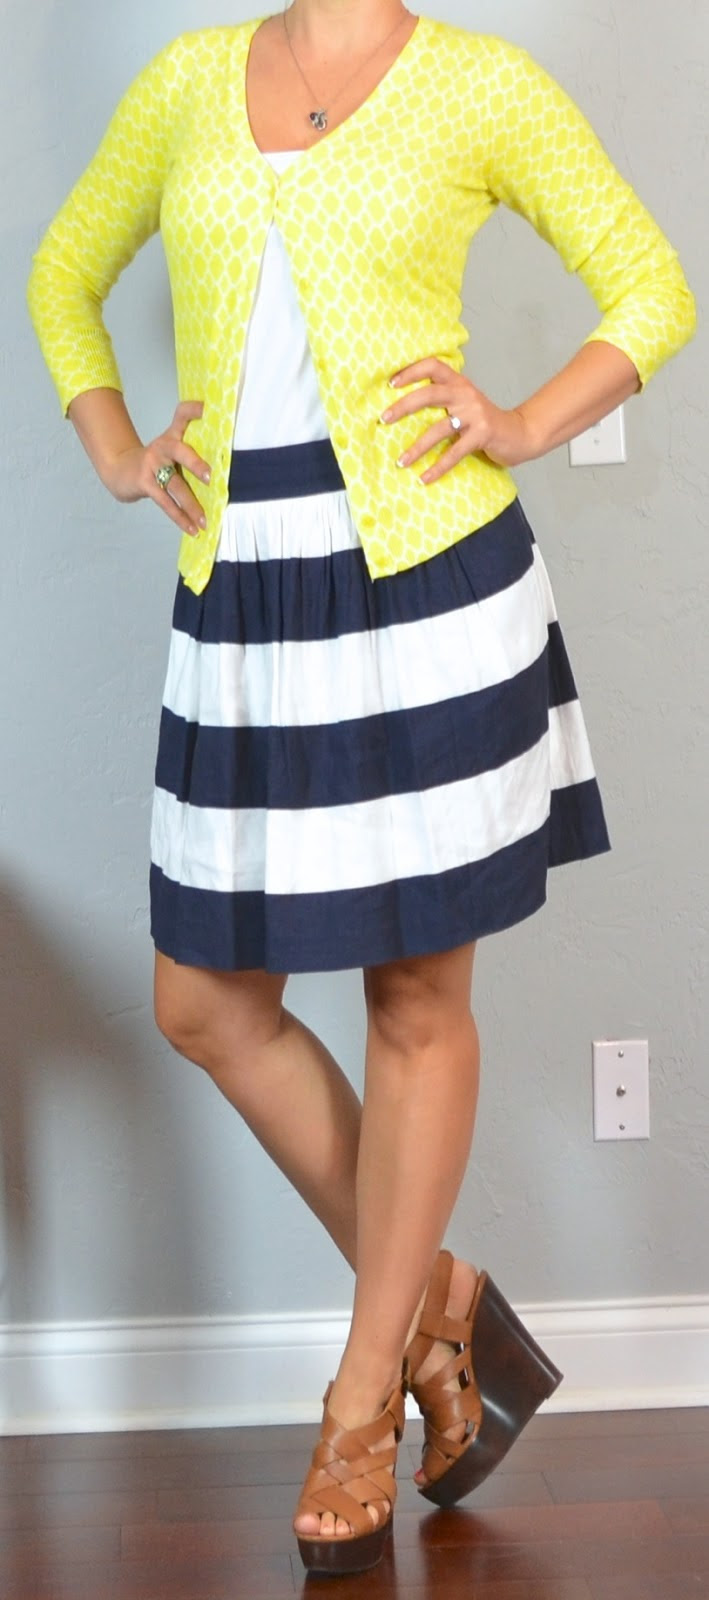 outfit post navy striped skirt yellow cardigan brown wedges